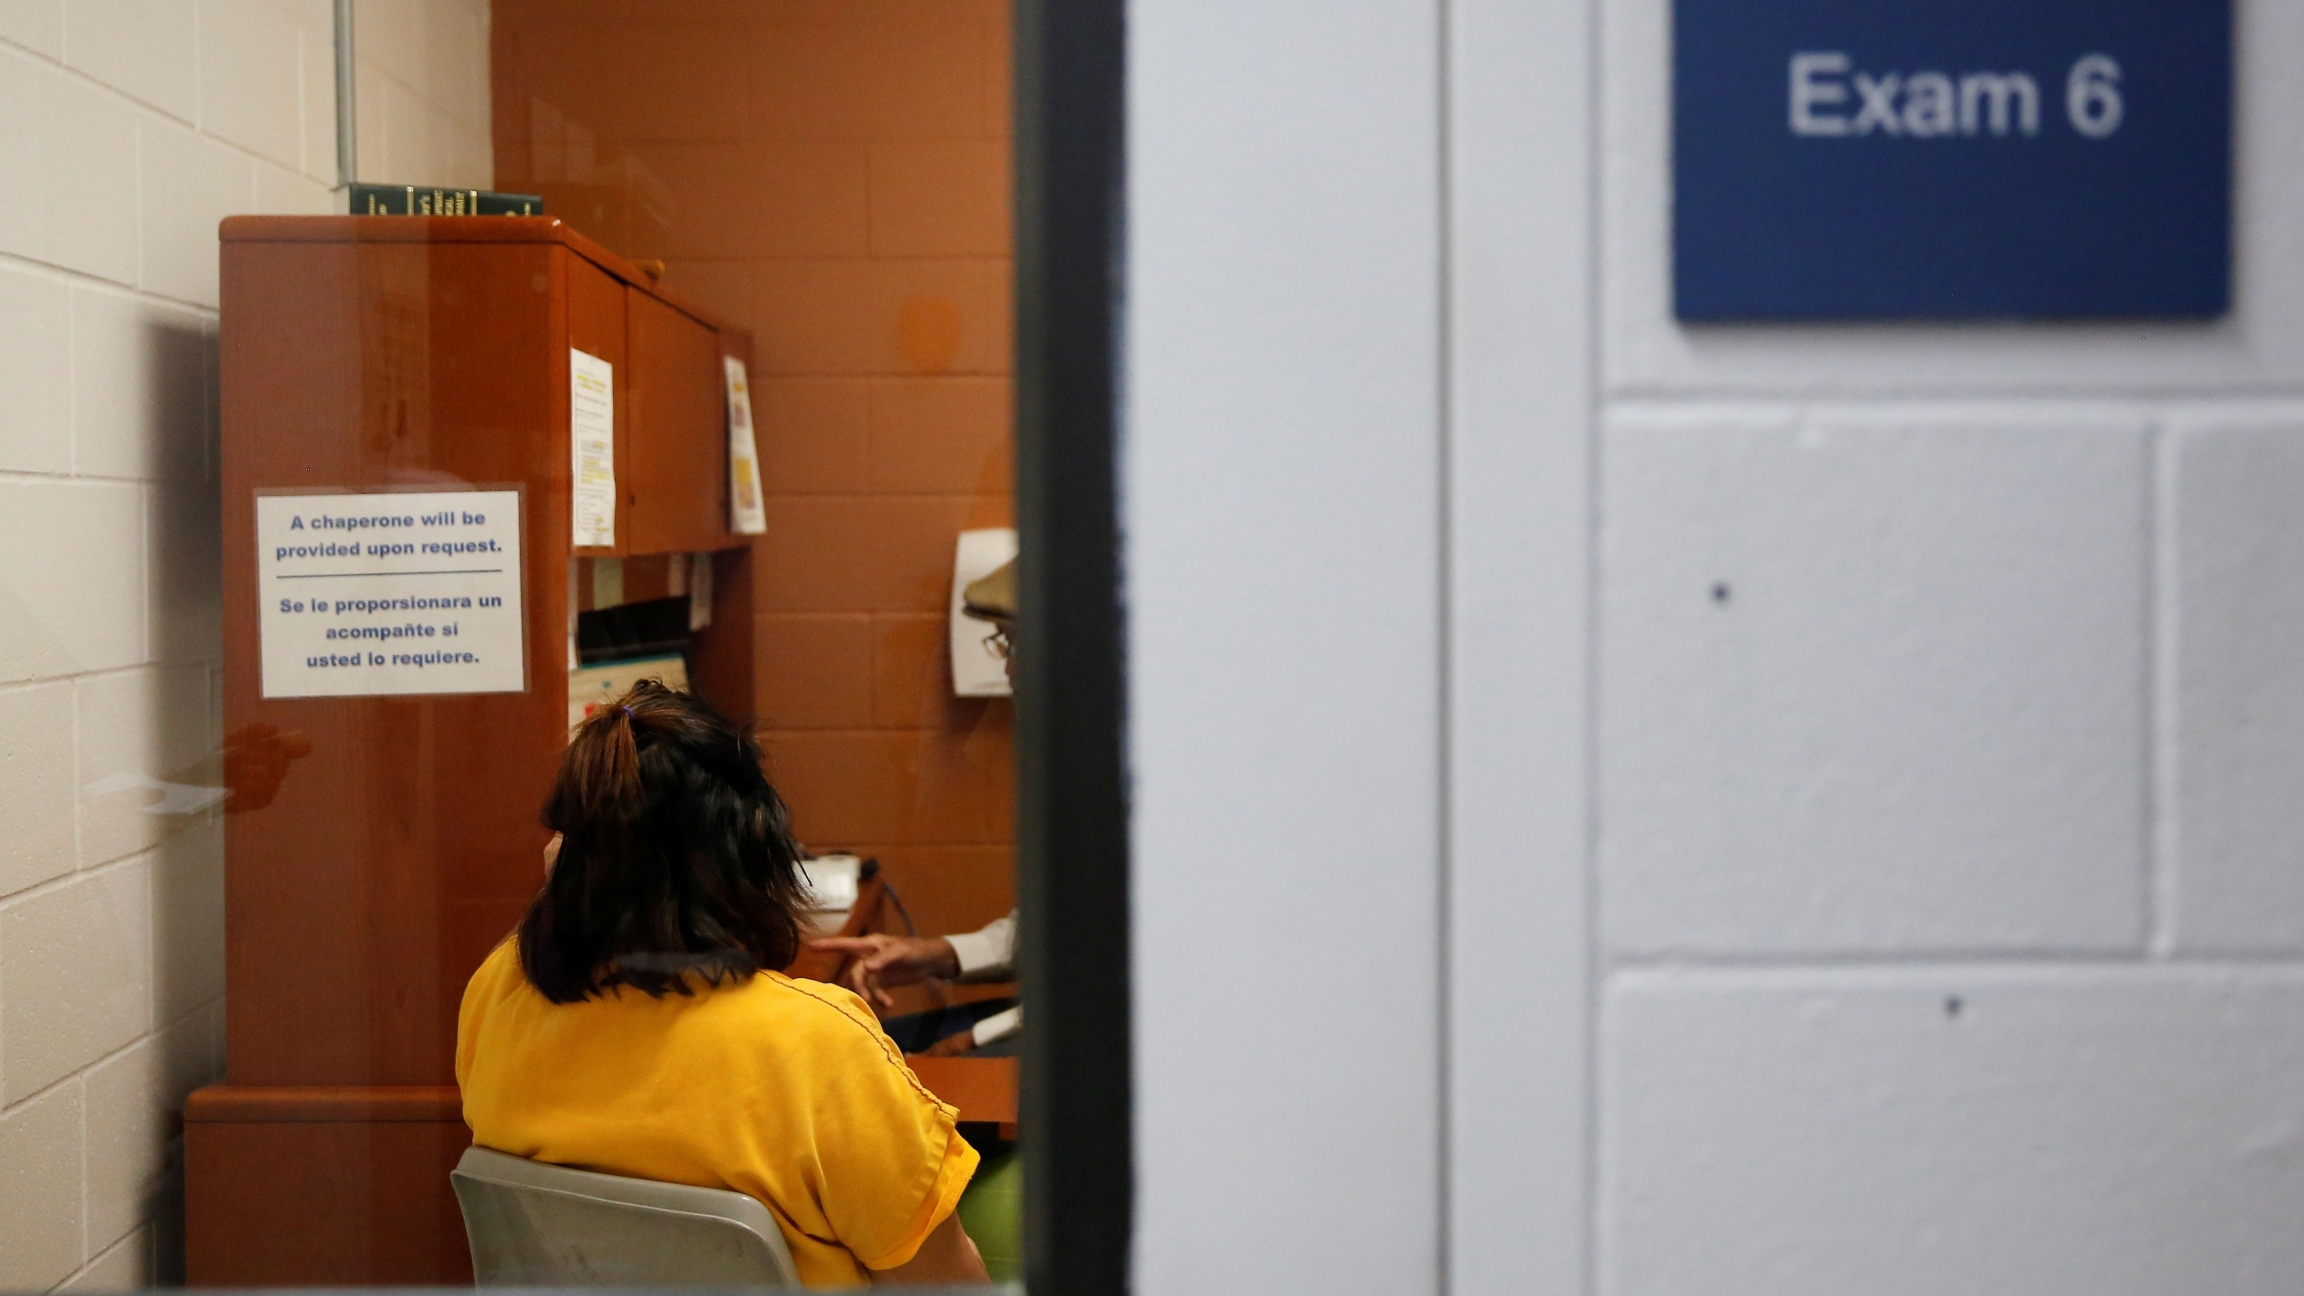 A detainee talks with an employee in an exam room in the medial unit during a media tour at Northwest ICE Processing Center, one of 31 dedicated ICE facilities that house immigration detainees, in Tacoma, Washington, Dec. 16, 2019.